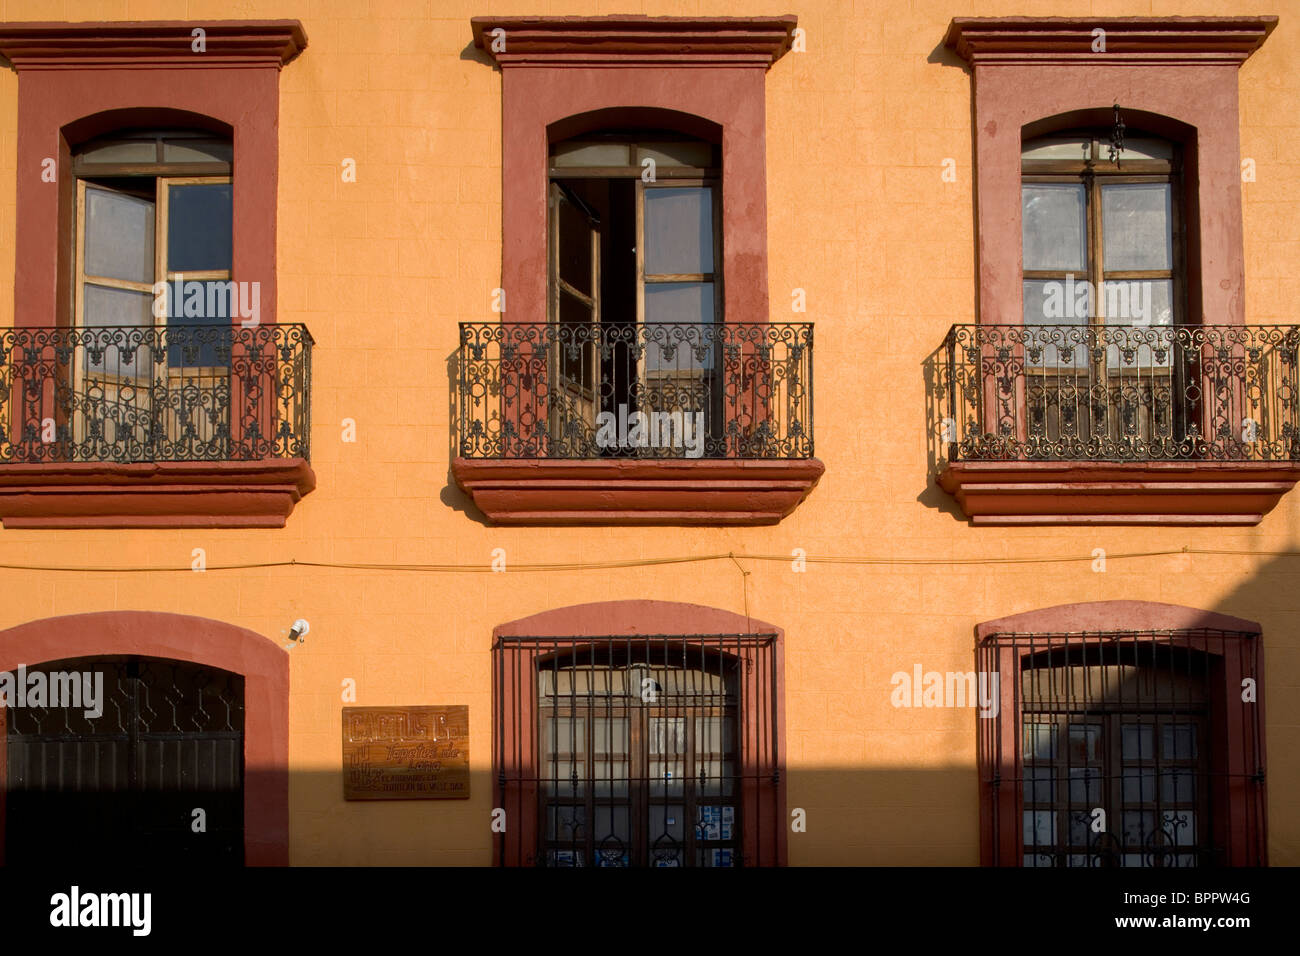 mexican wrought iron balcony in stock photos mexican. Black Bedroom Furniture Sets. Home Design Ideas